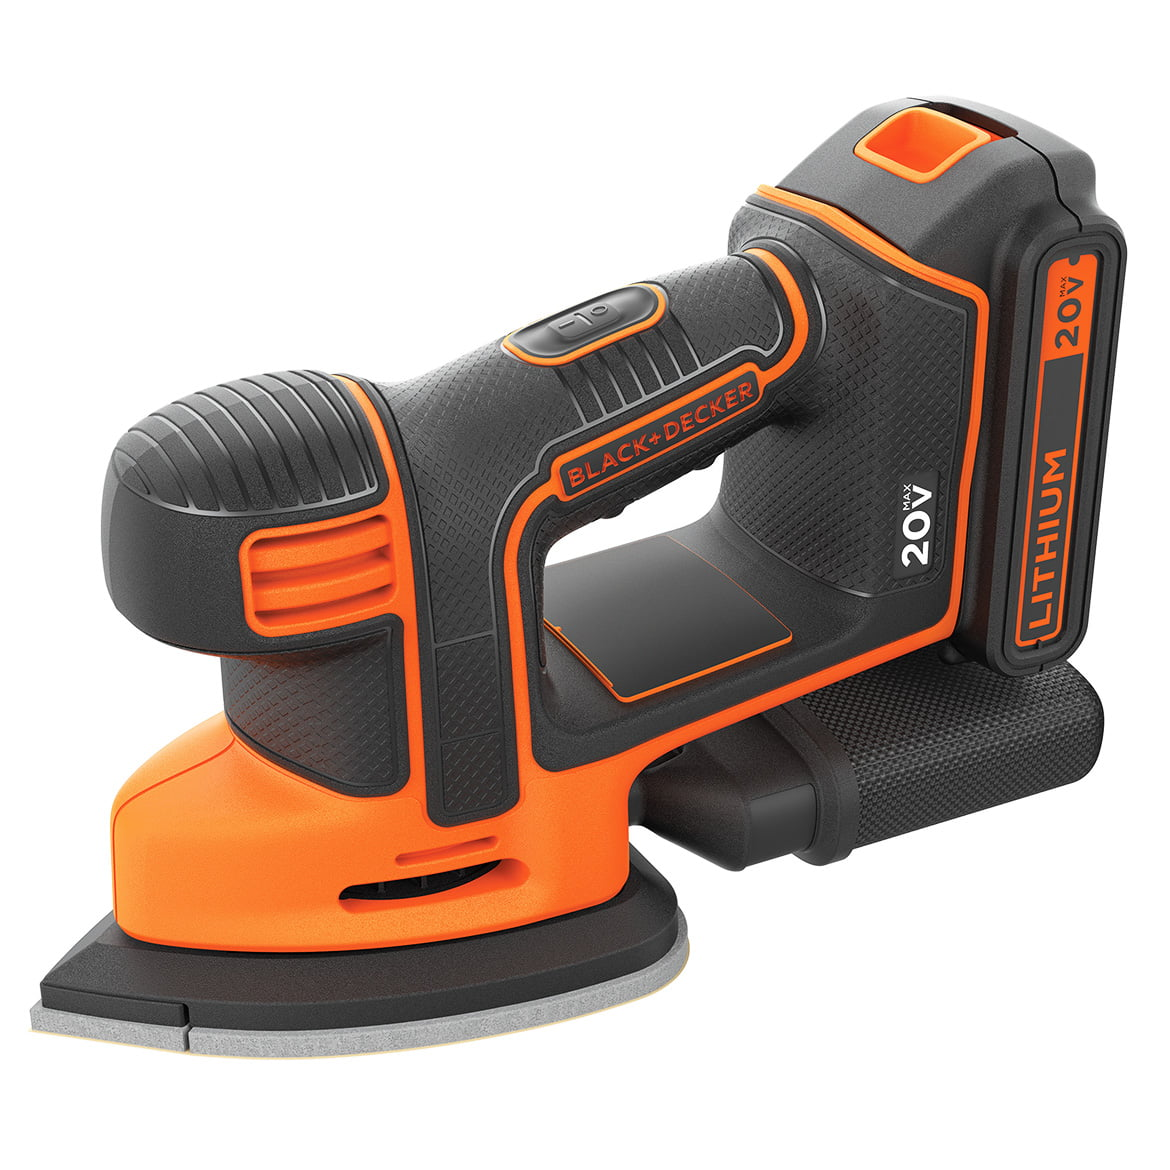 Black & Decker BDCMS20C 20V Max* Lithium-Ion Cordless Mouse Orbital Sander by Stanley Black & Decker